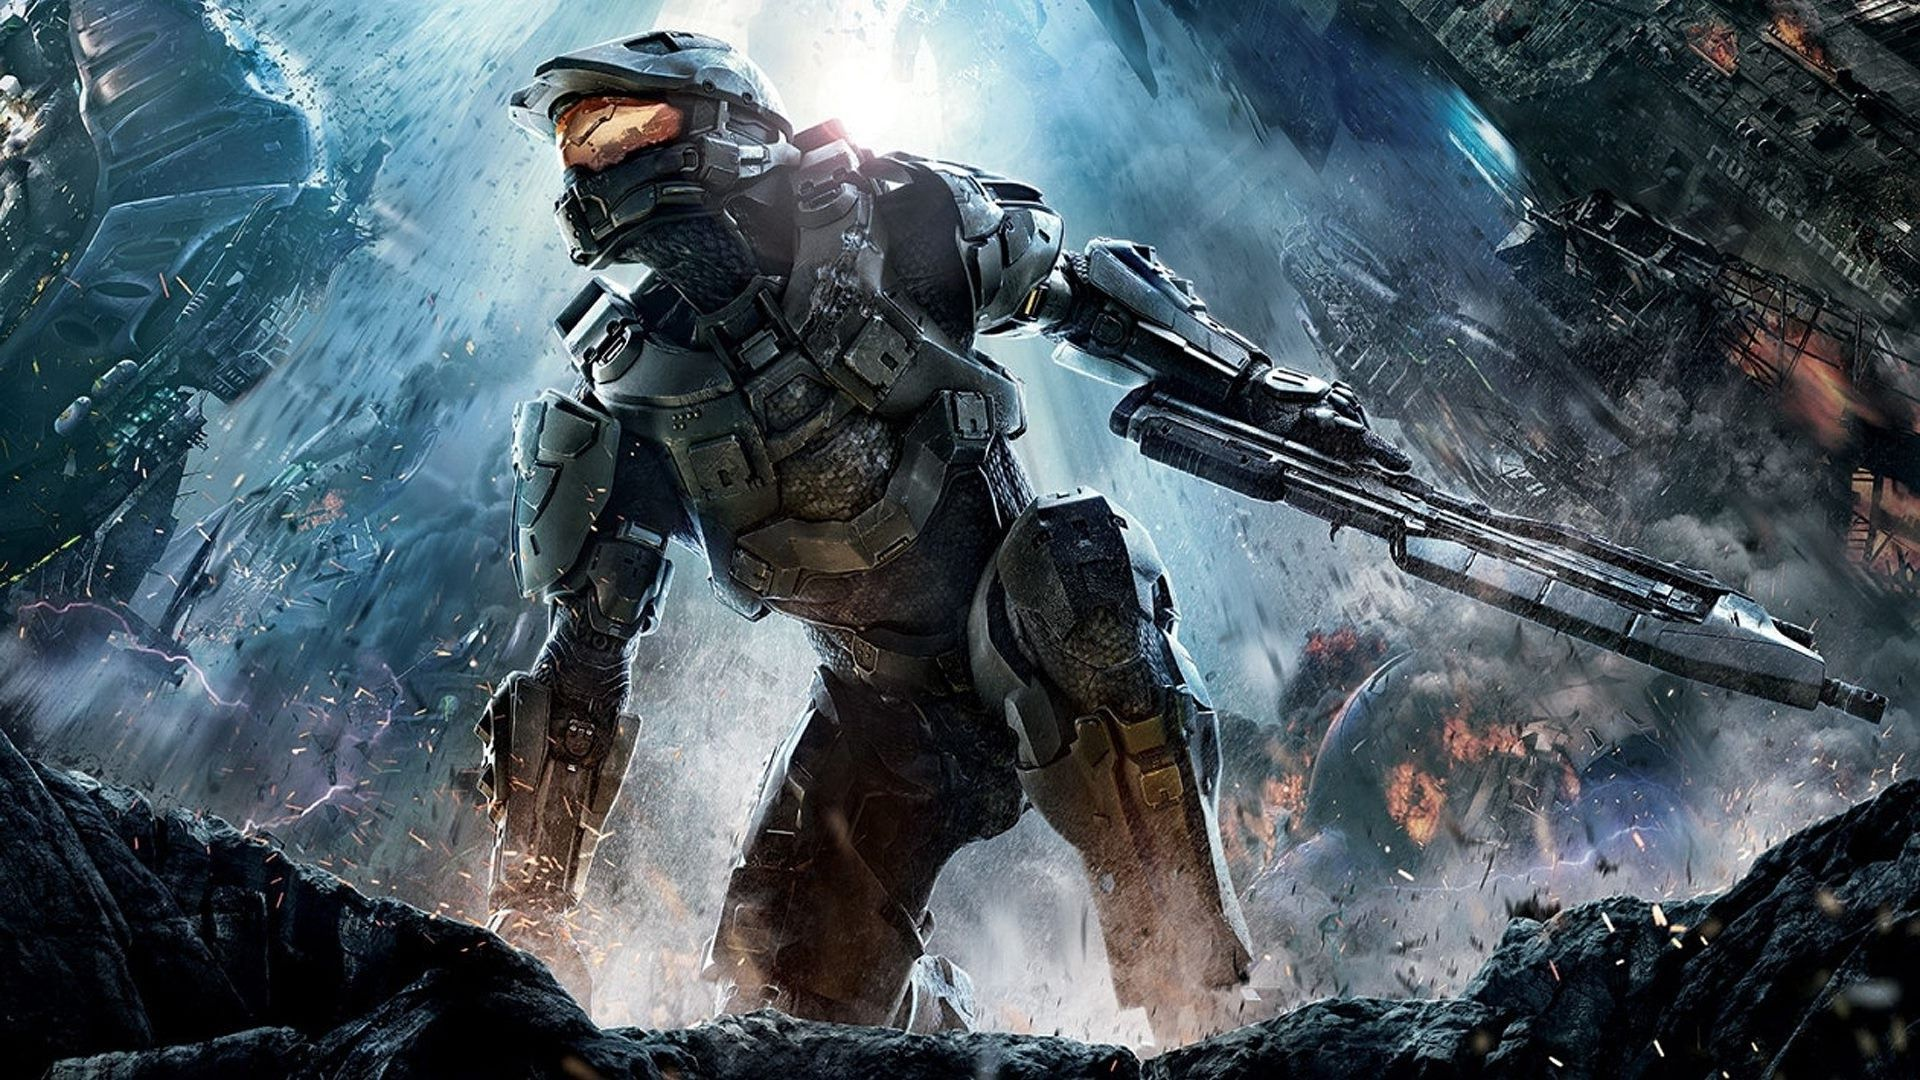 87 Halo 4 HD Wallpapers Backgrounds Best 1920x1080